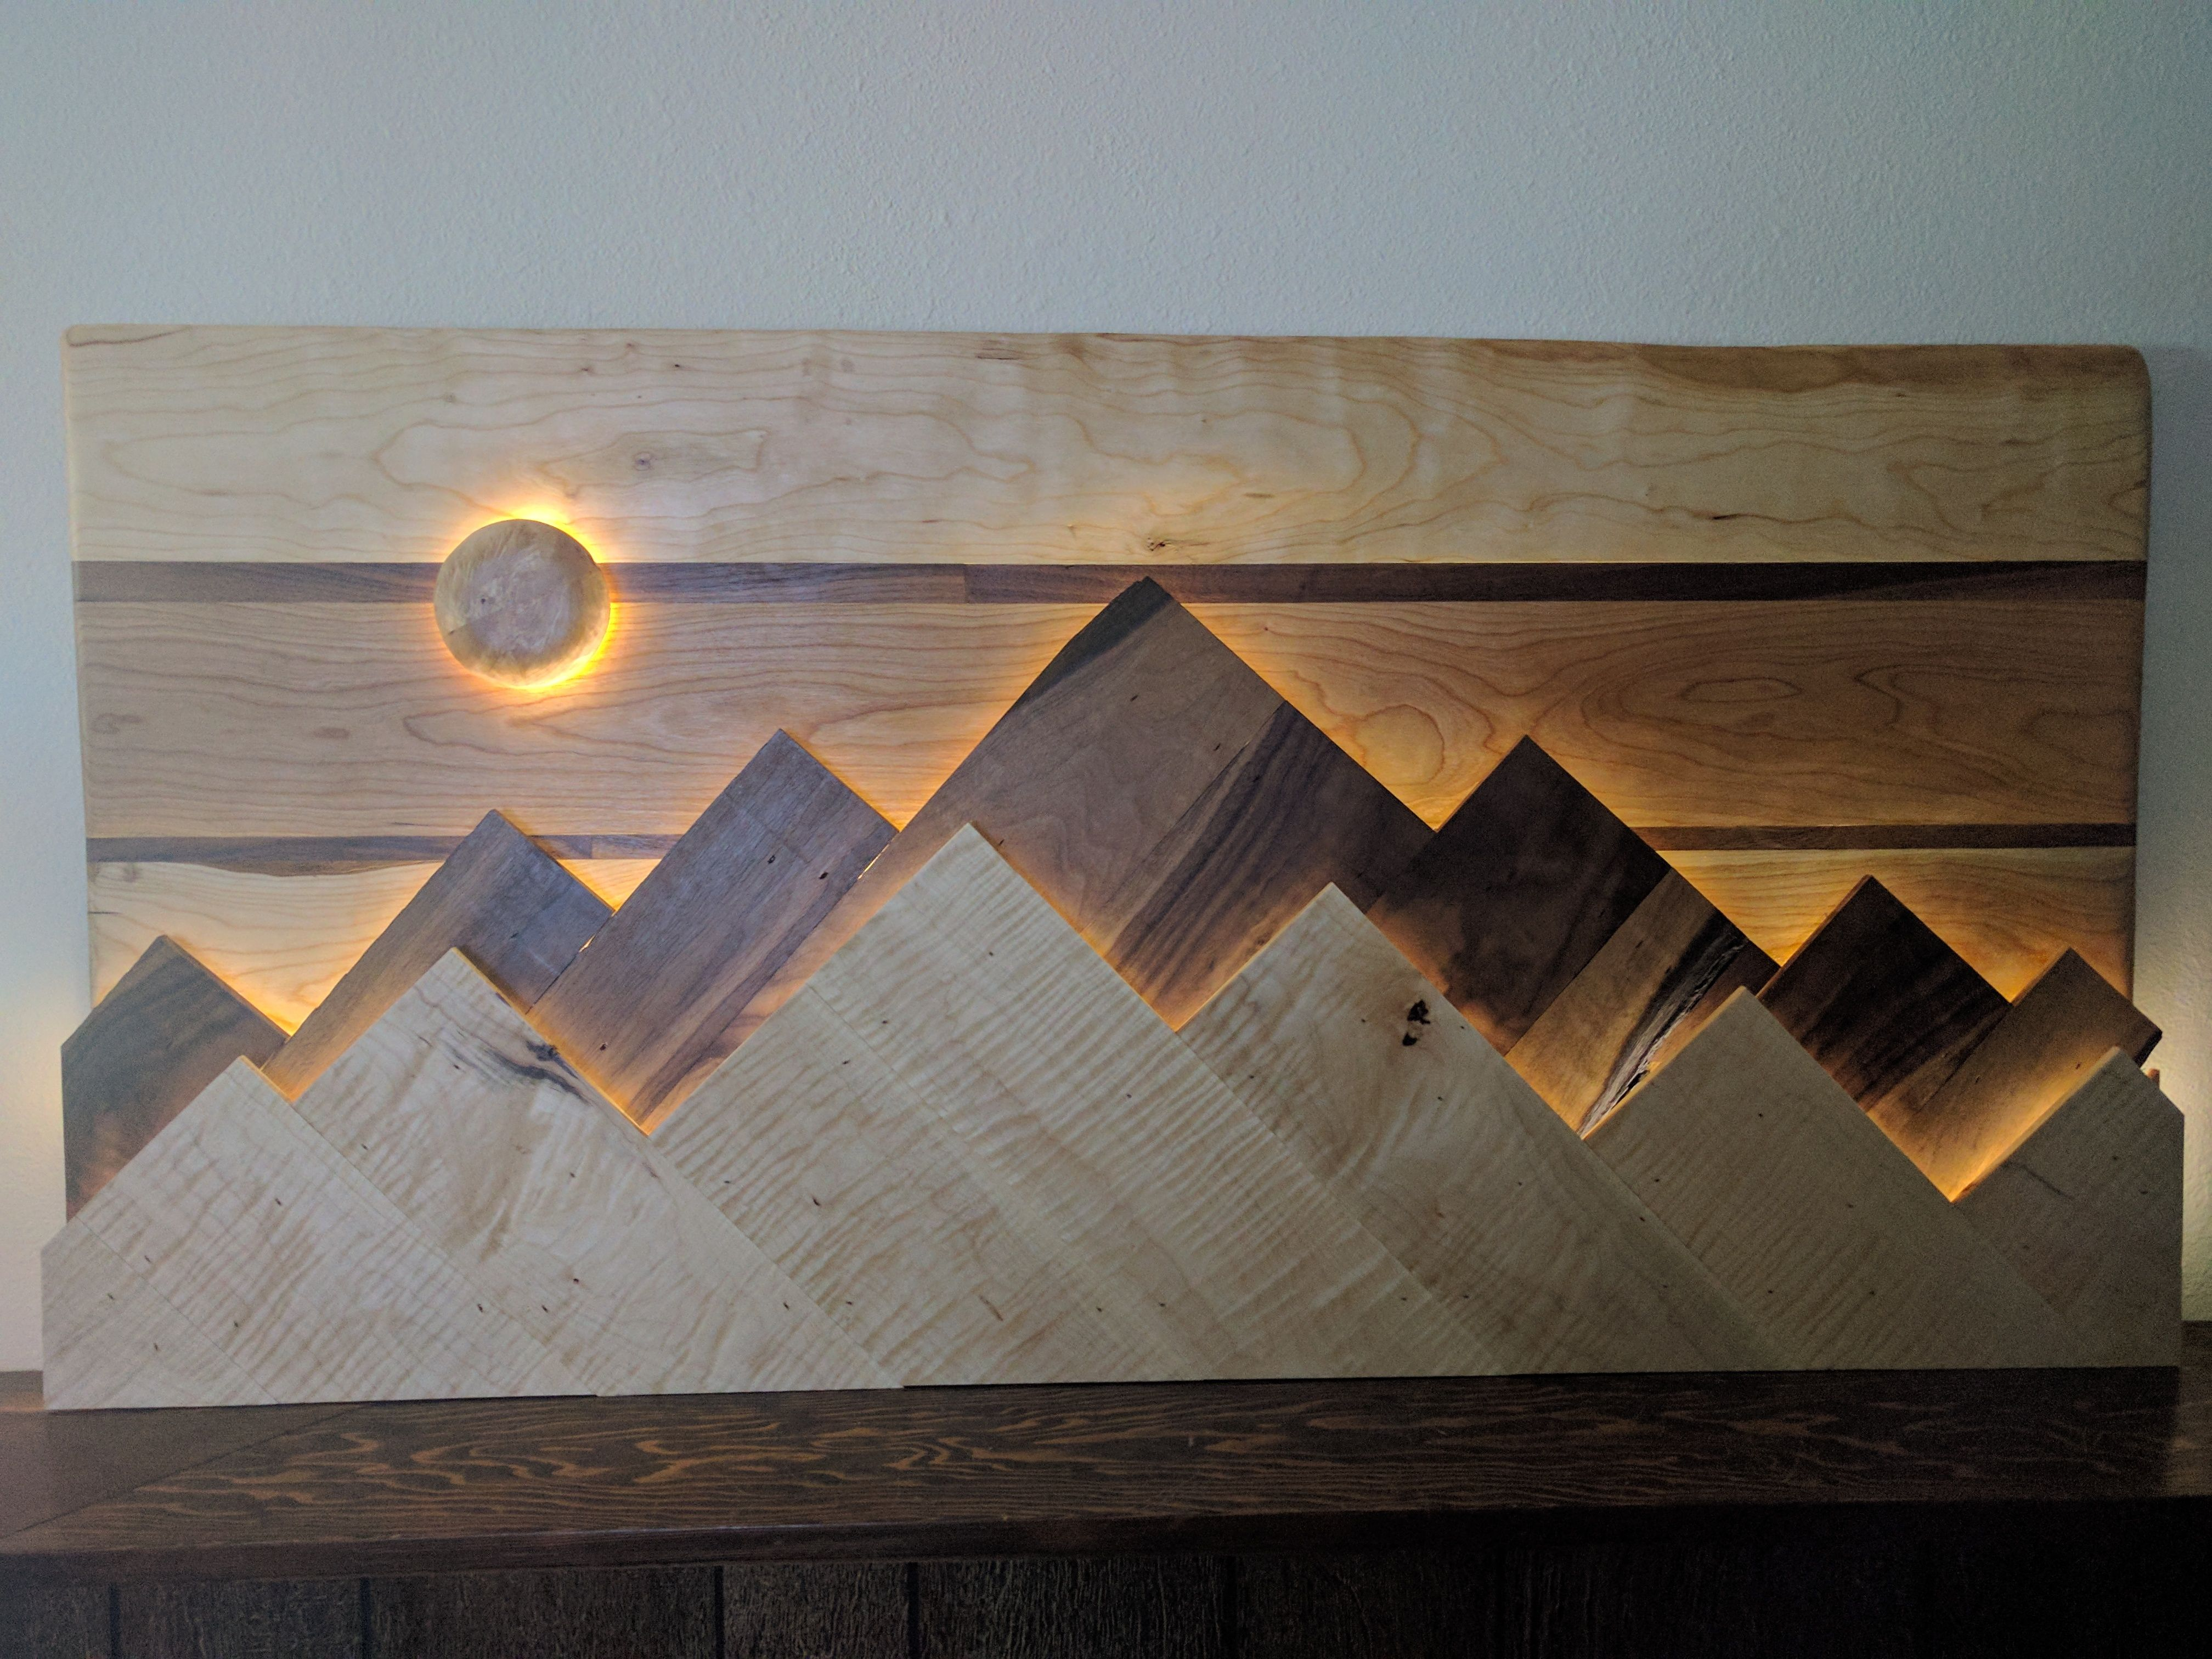 Wood mountain range wall art The sunmoon functions as a dimmer